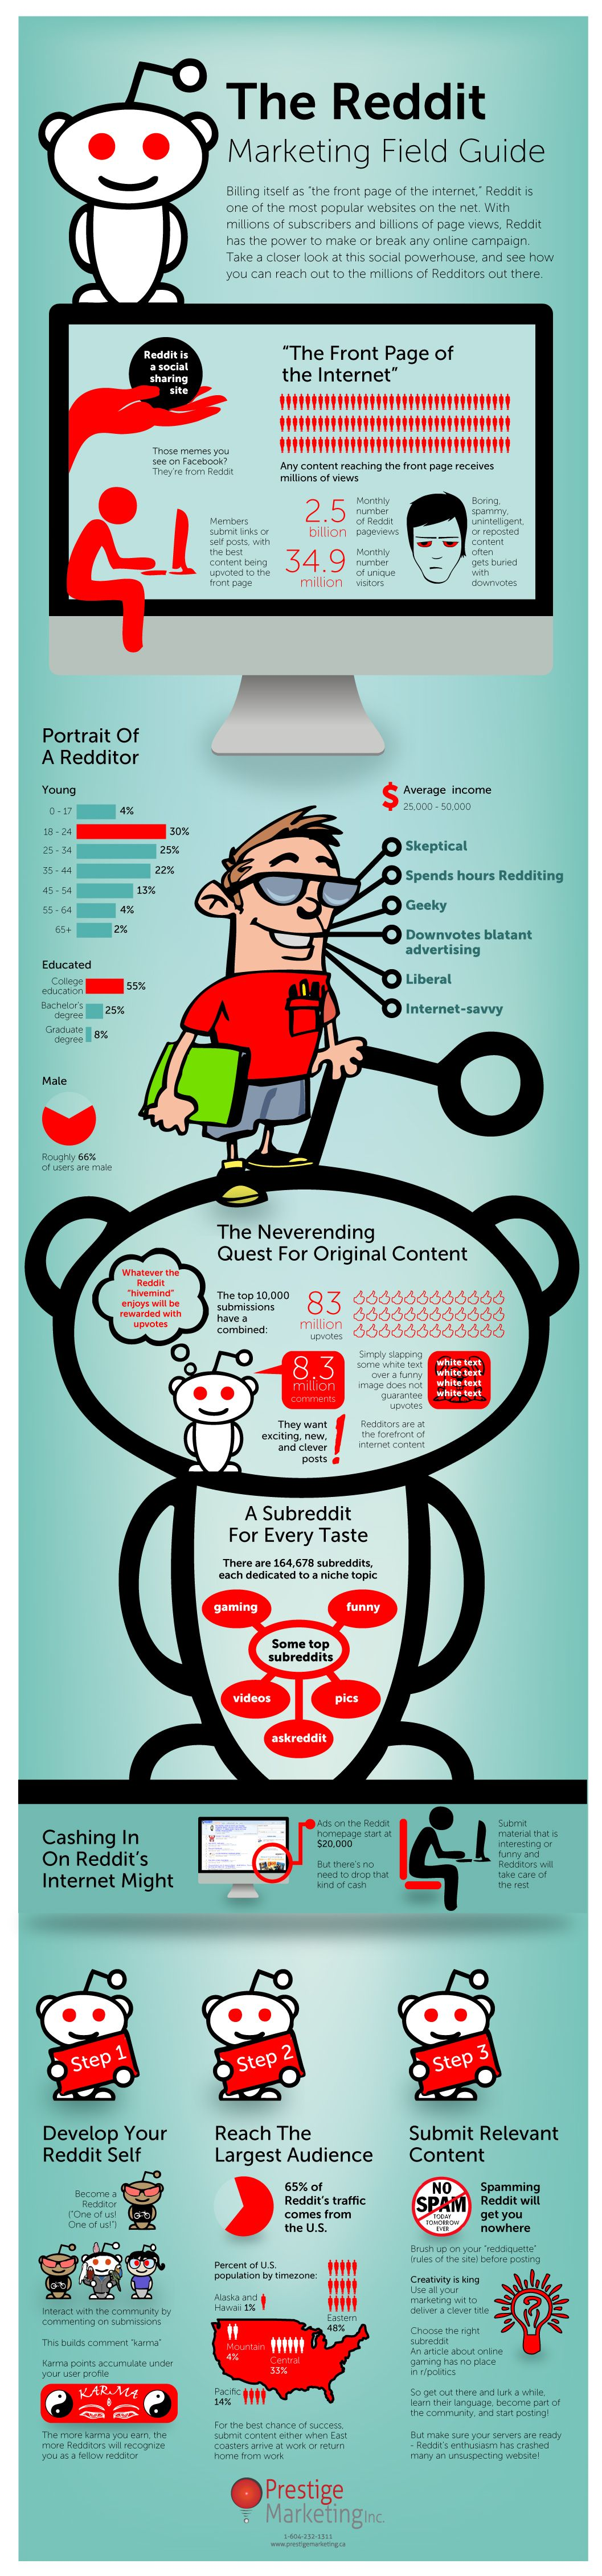 A Guide for Marketing on Reddit (Infographic)